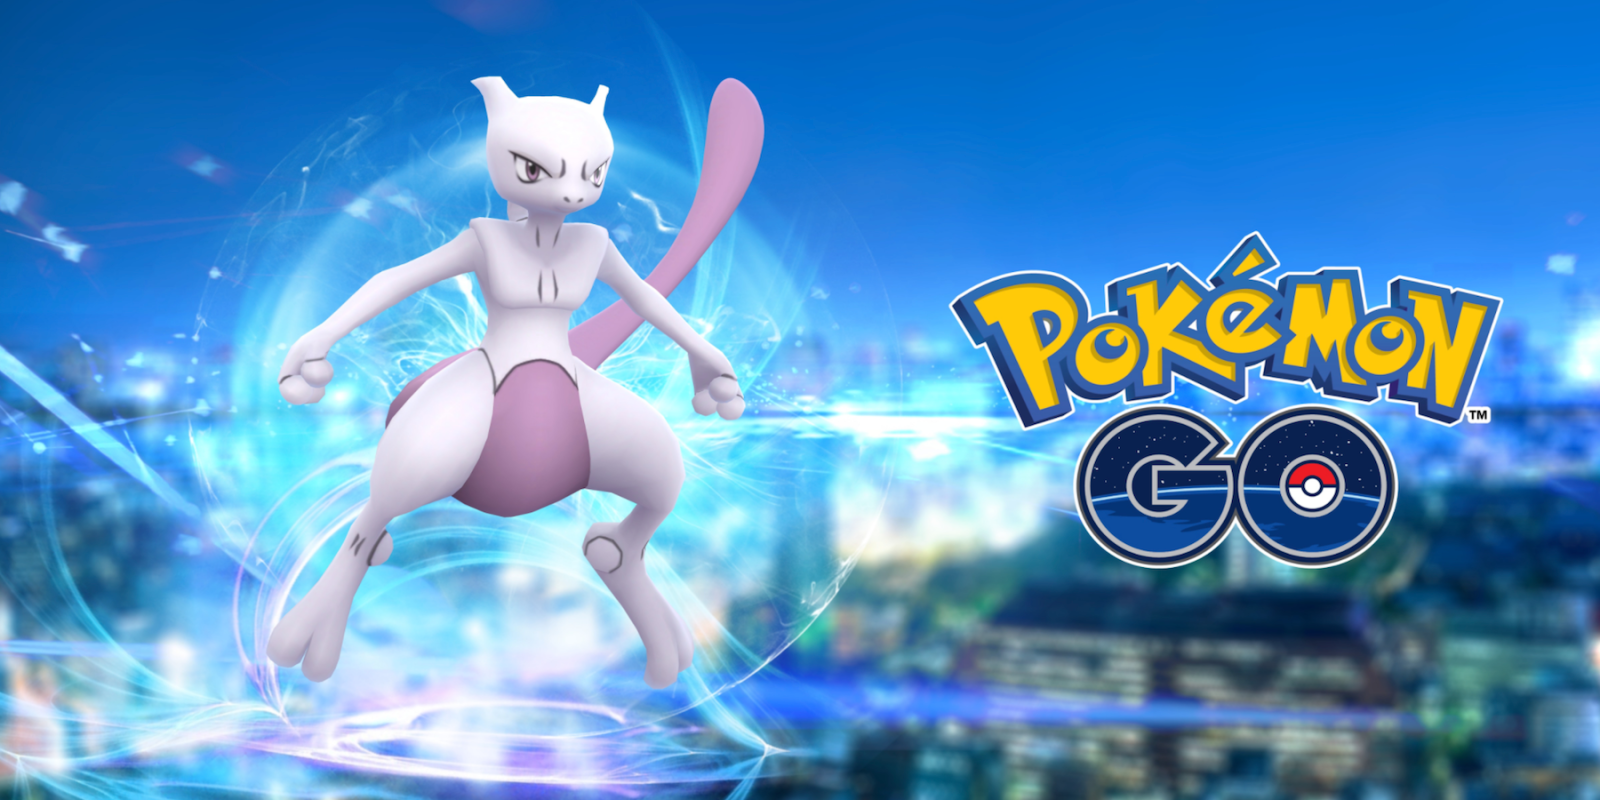 pokmon go update to energize game with new player versus mode this year